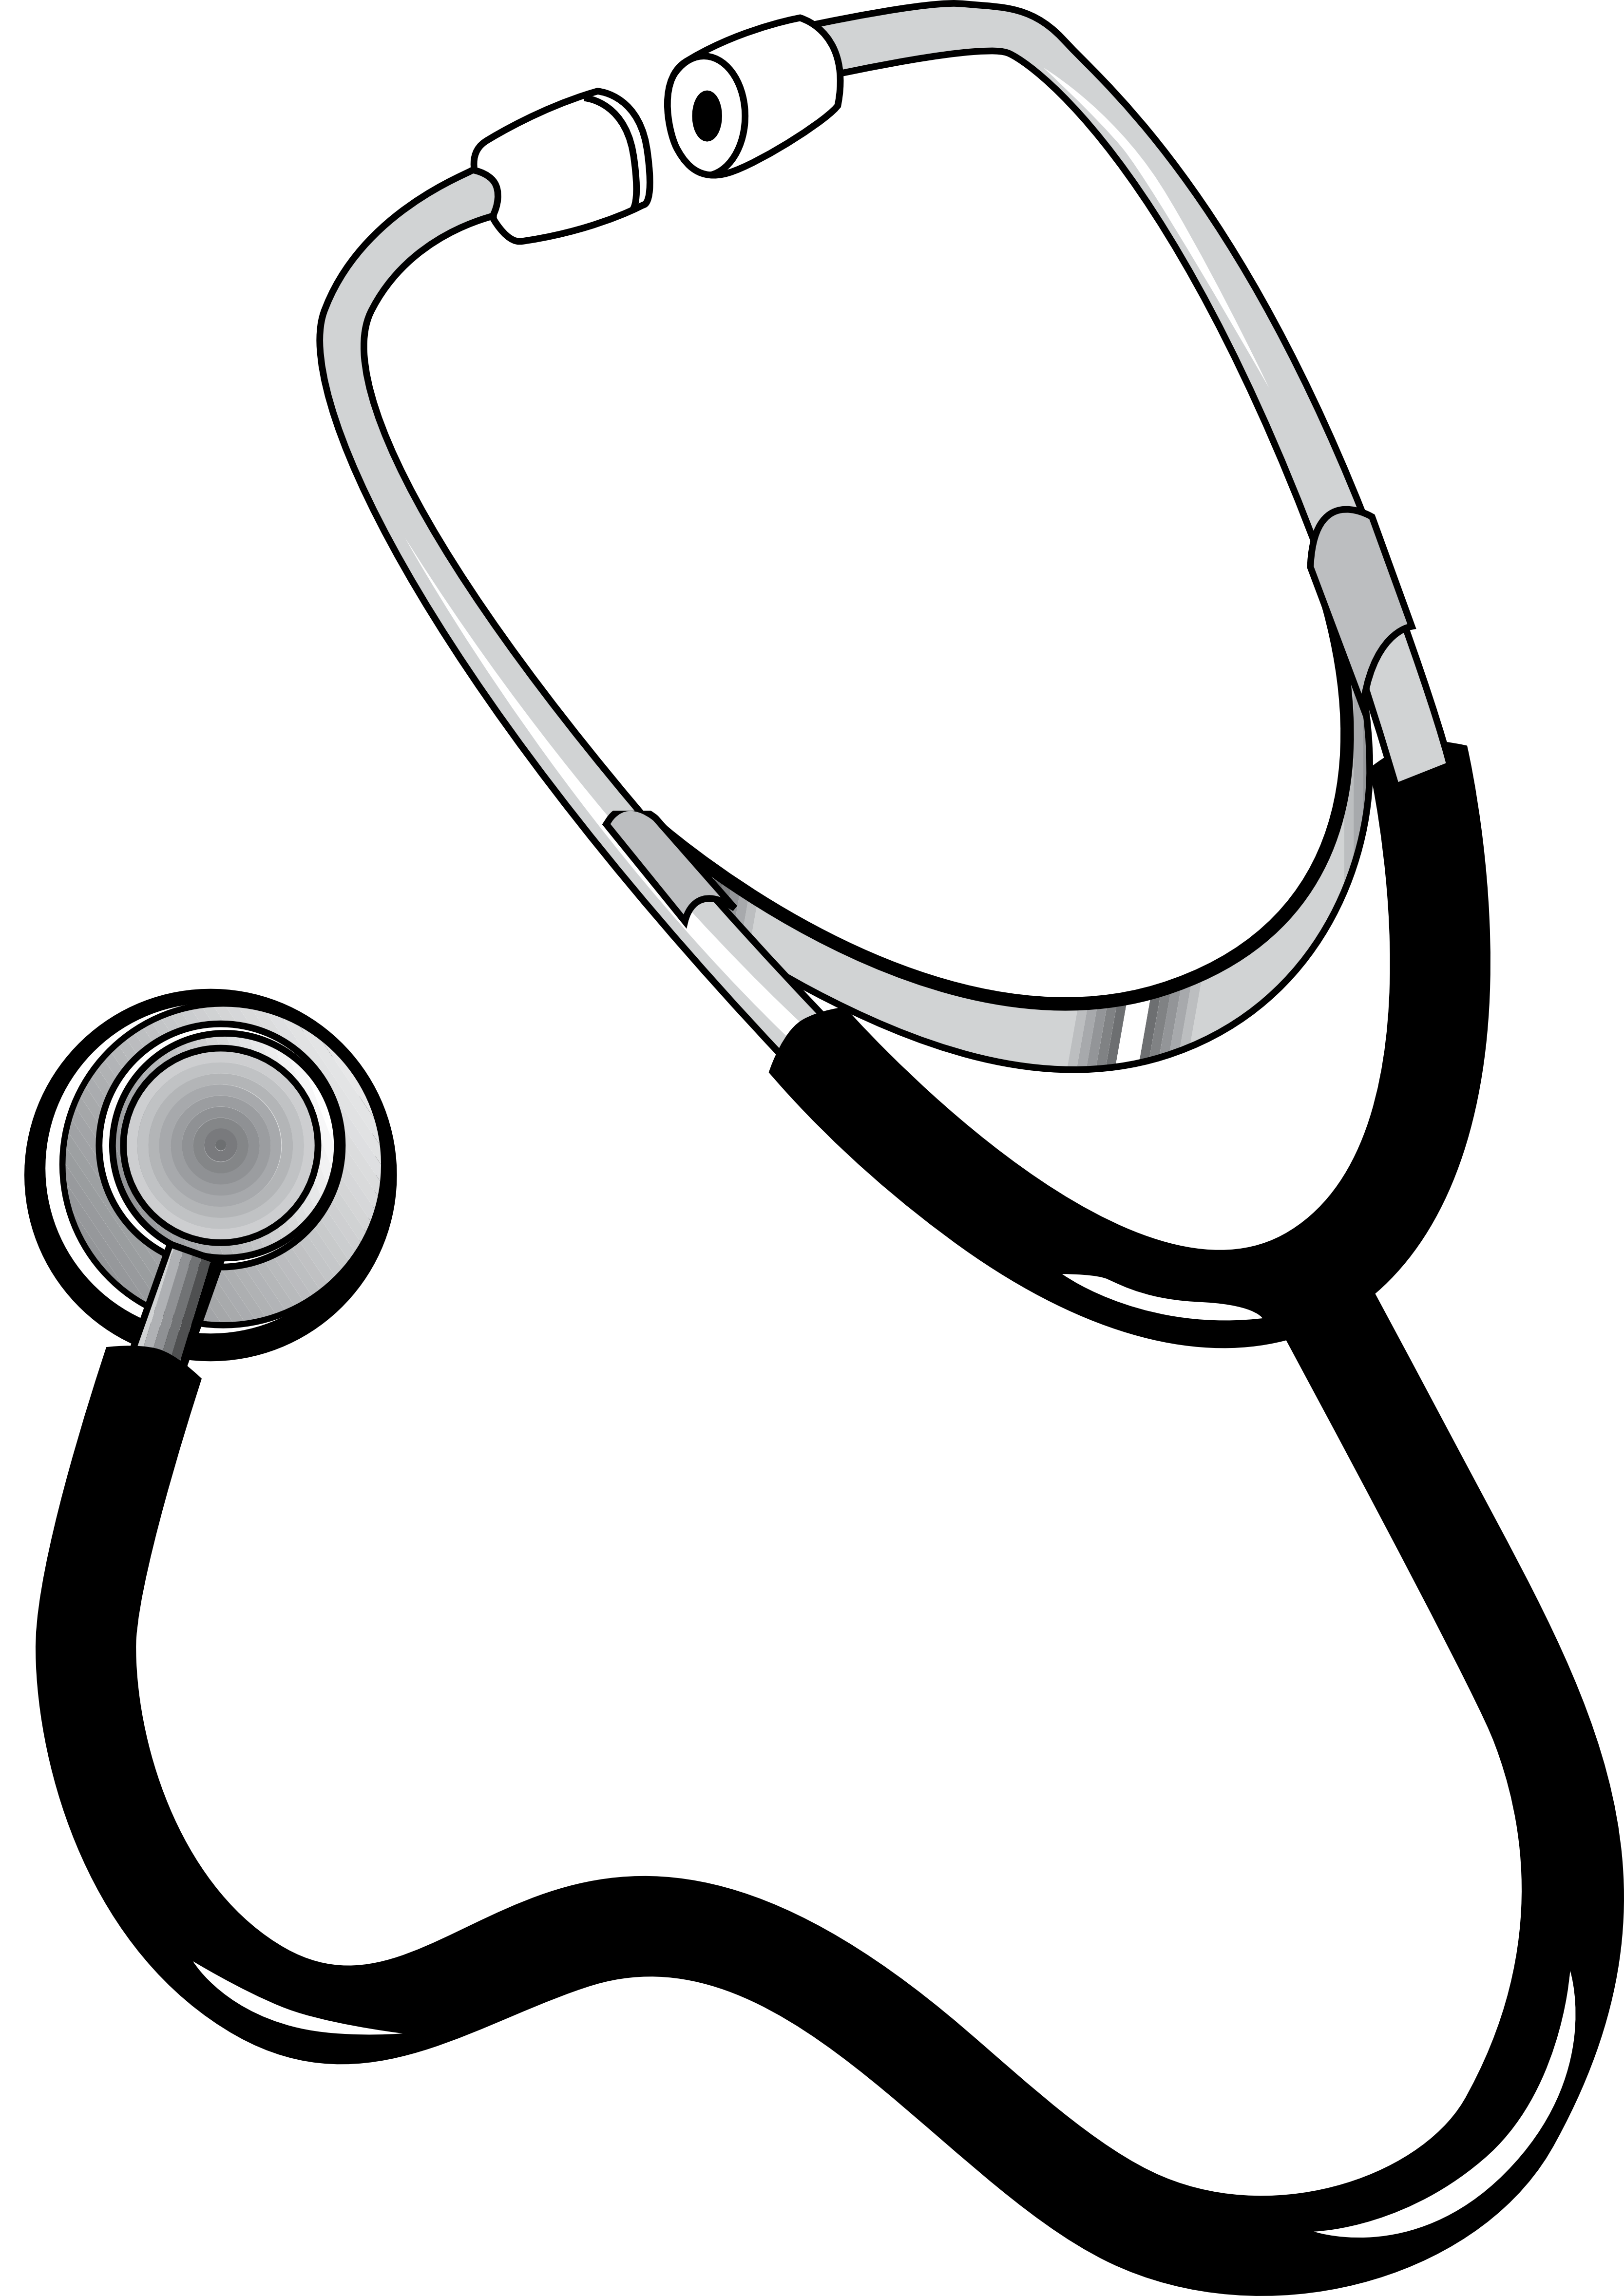 stethoscope clipart clipart panda free clipart images rh clipartpanda com stethoscope clipart black and white stethoscope clipart free